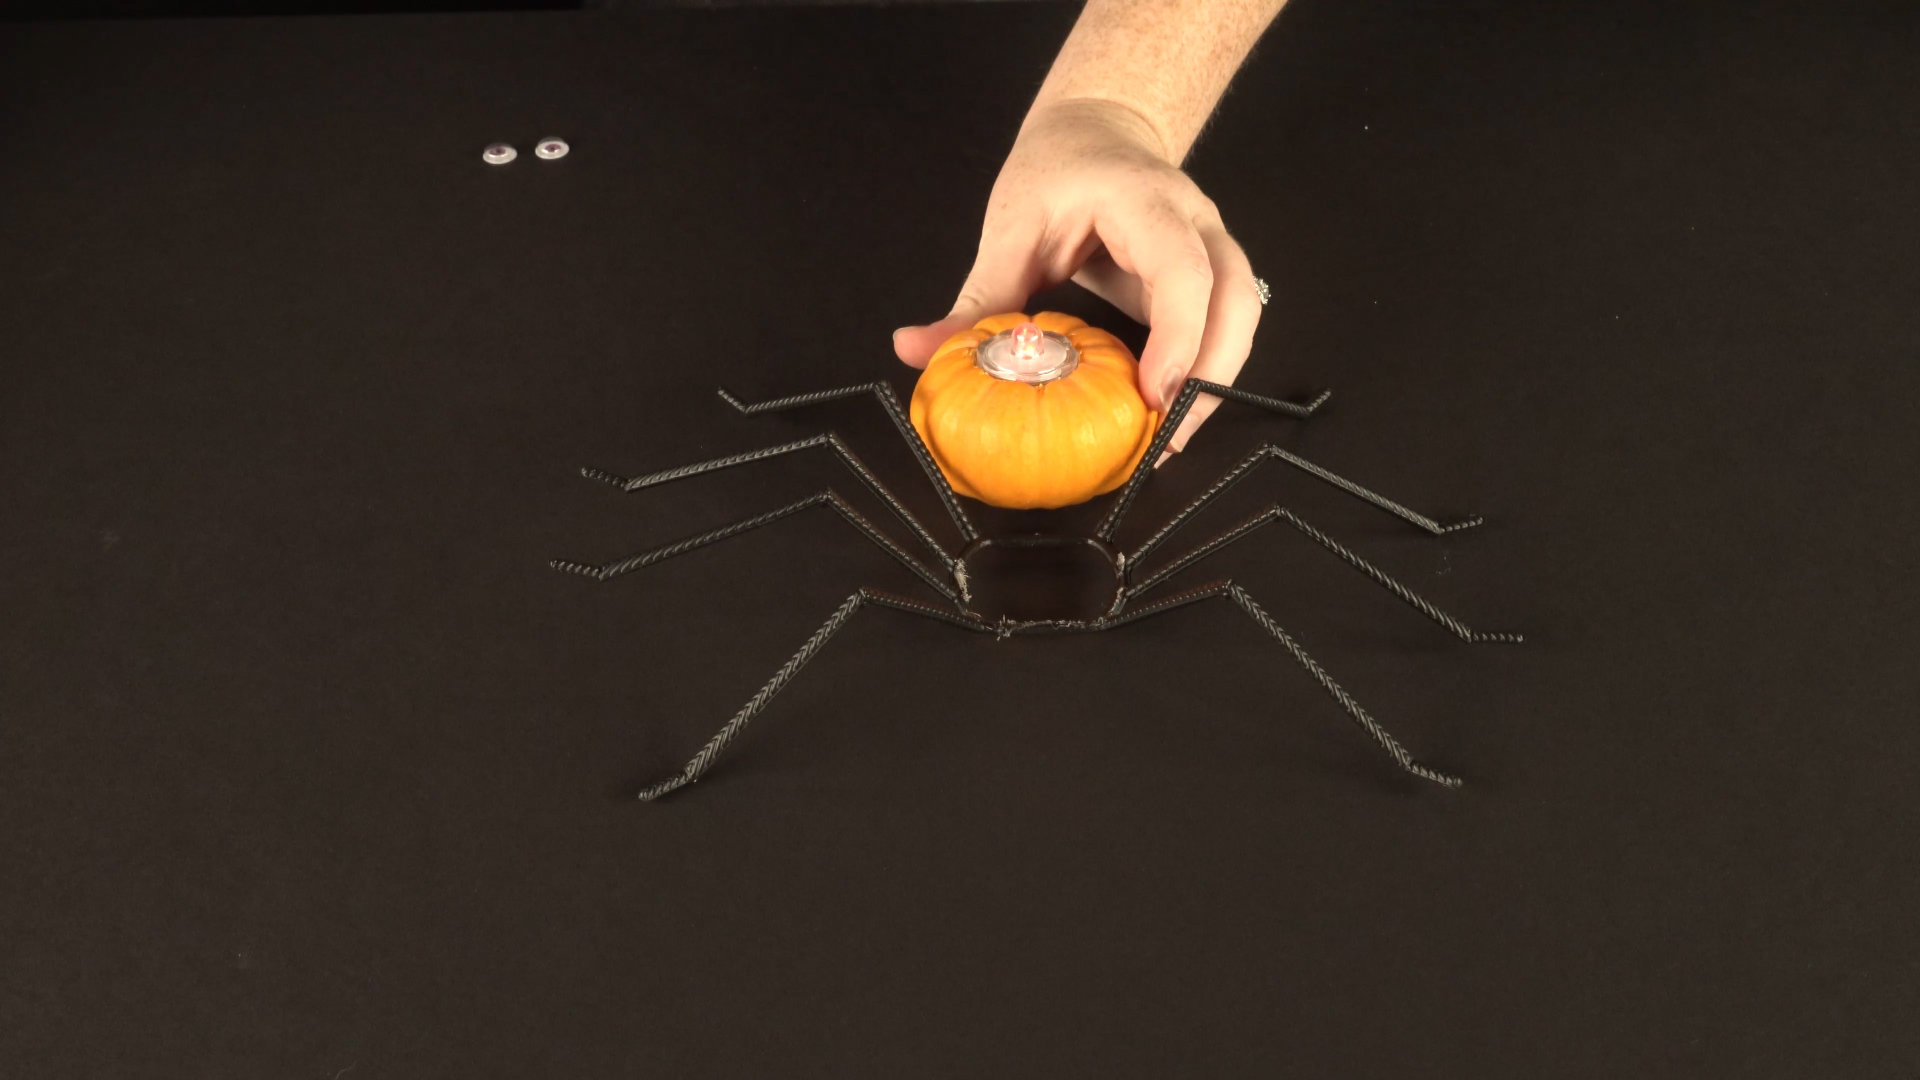 Halloween crafts with color-changing led tea lights - spider step 3